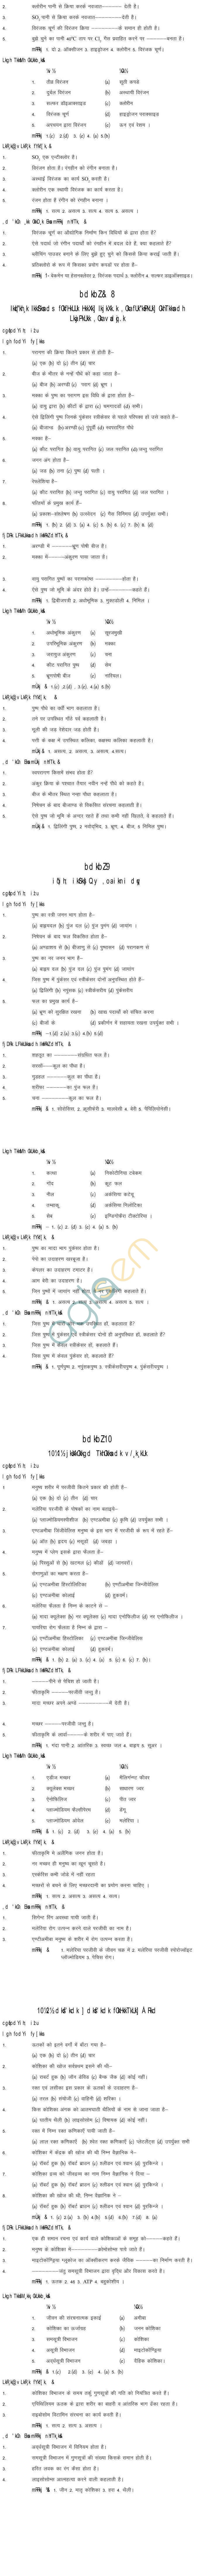 Chhattisgarh Board Class 11 Question Bank - Vigyan ke Tatva